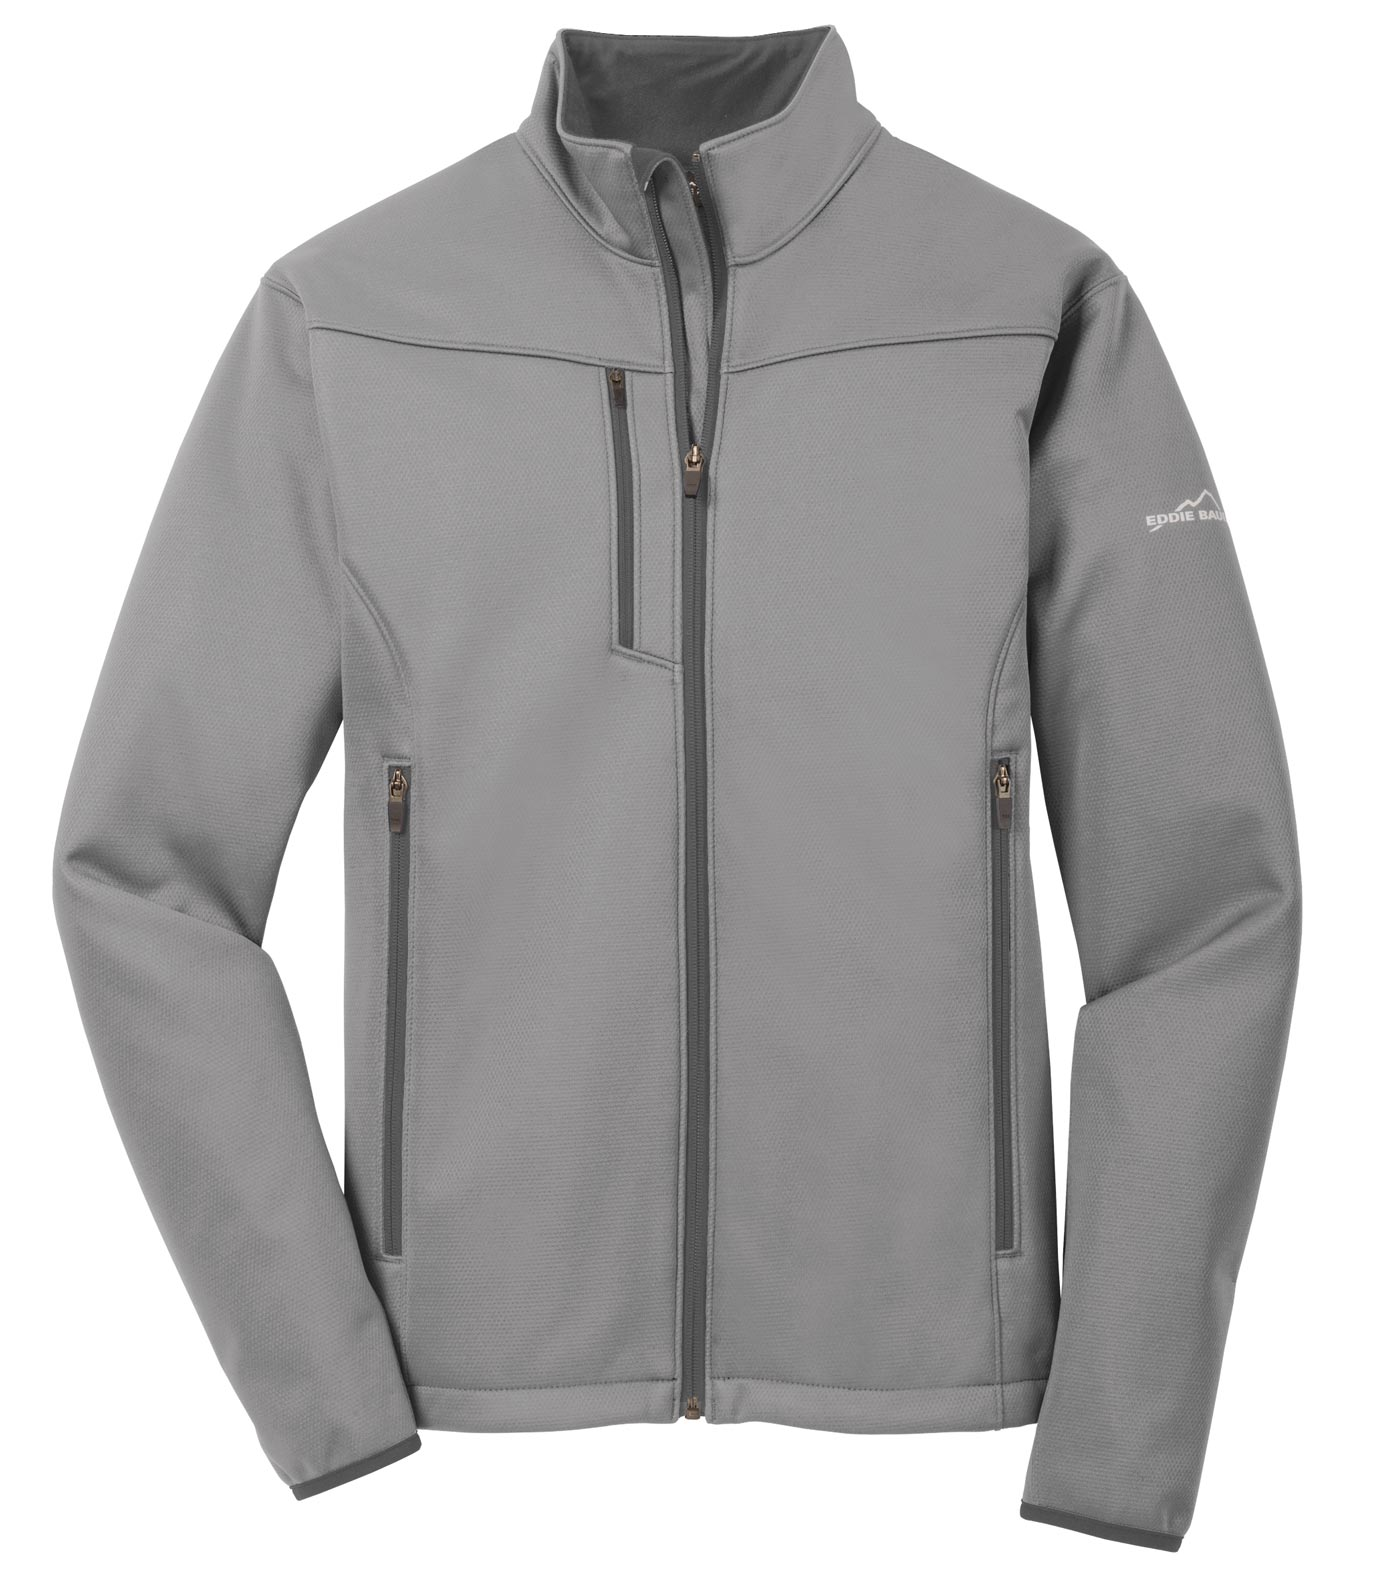 Eddie Bauer� Weather-Resist Soft Shell Jacket